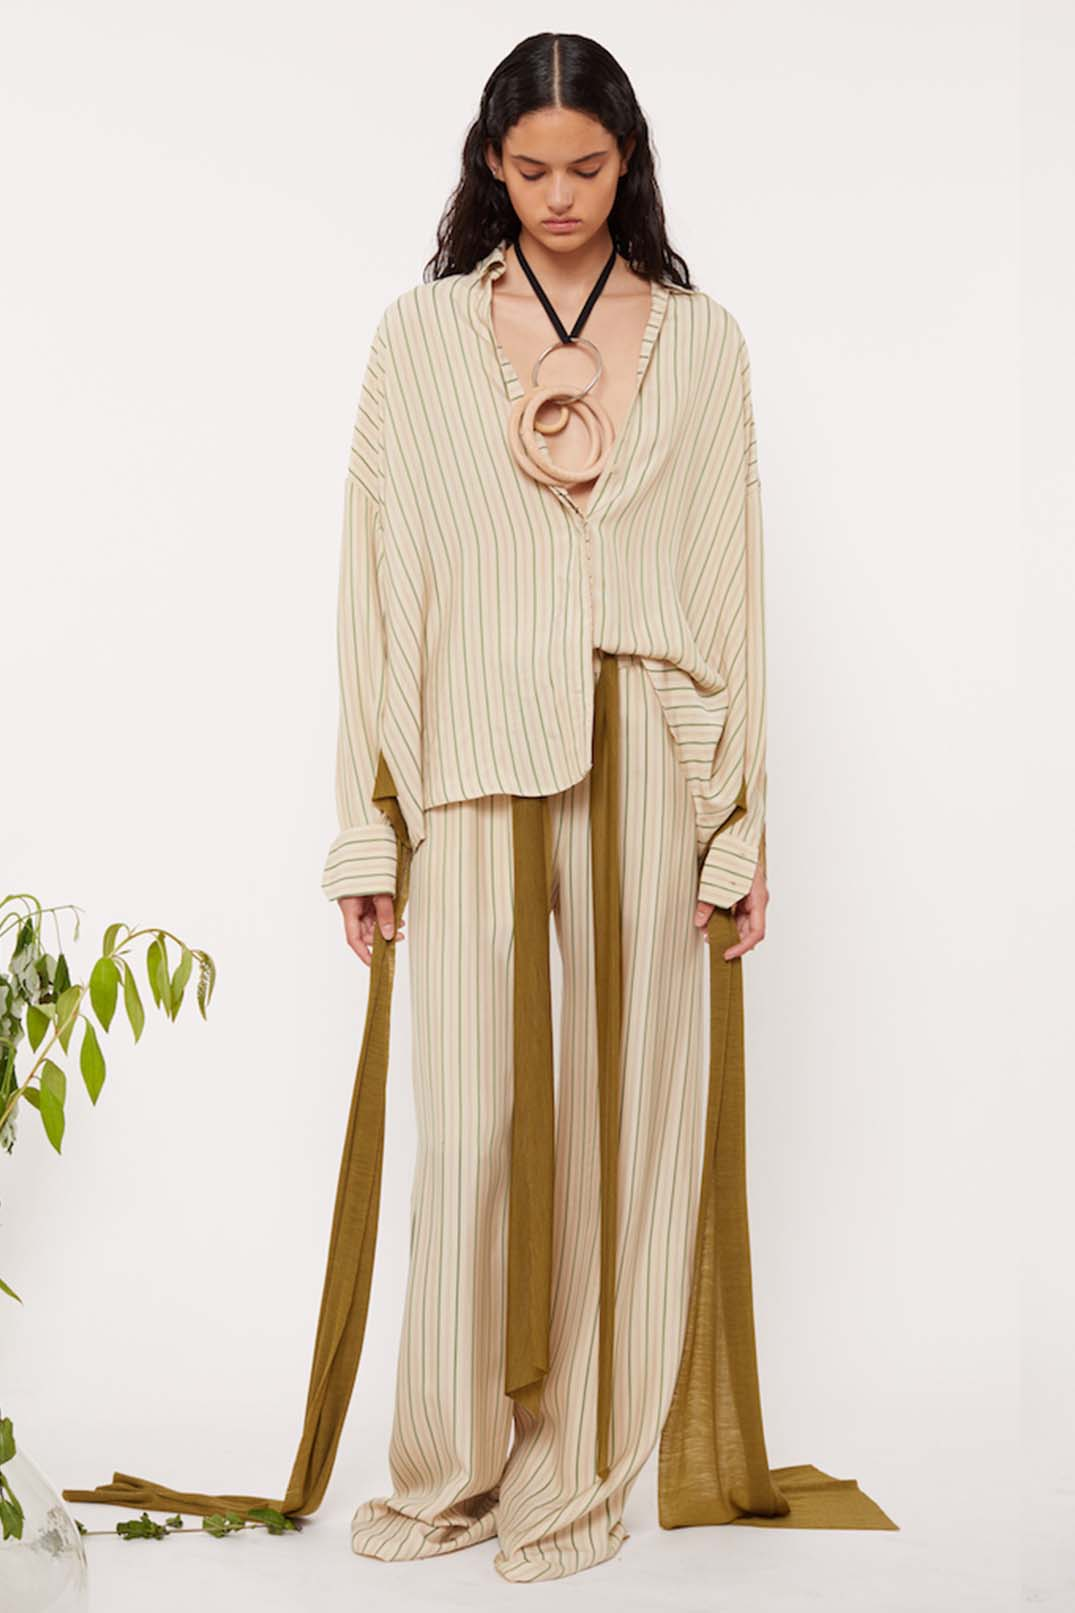 DRAWSTRING TROUSERS - Esteban Cortazar